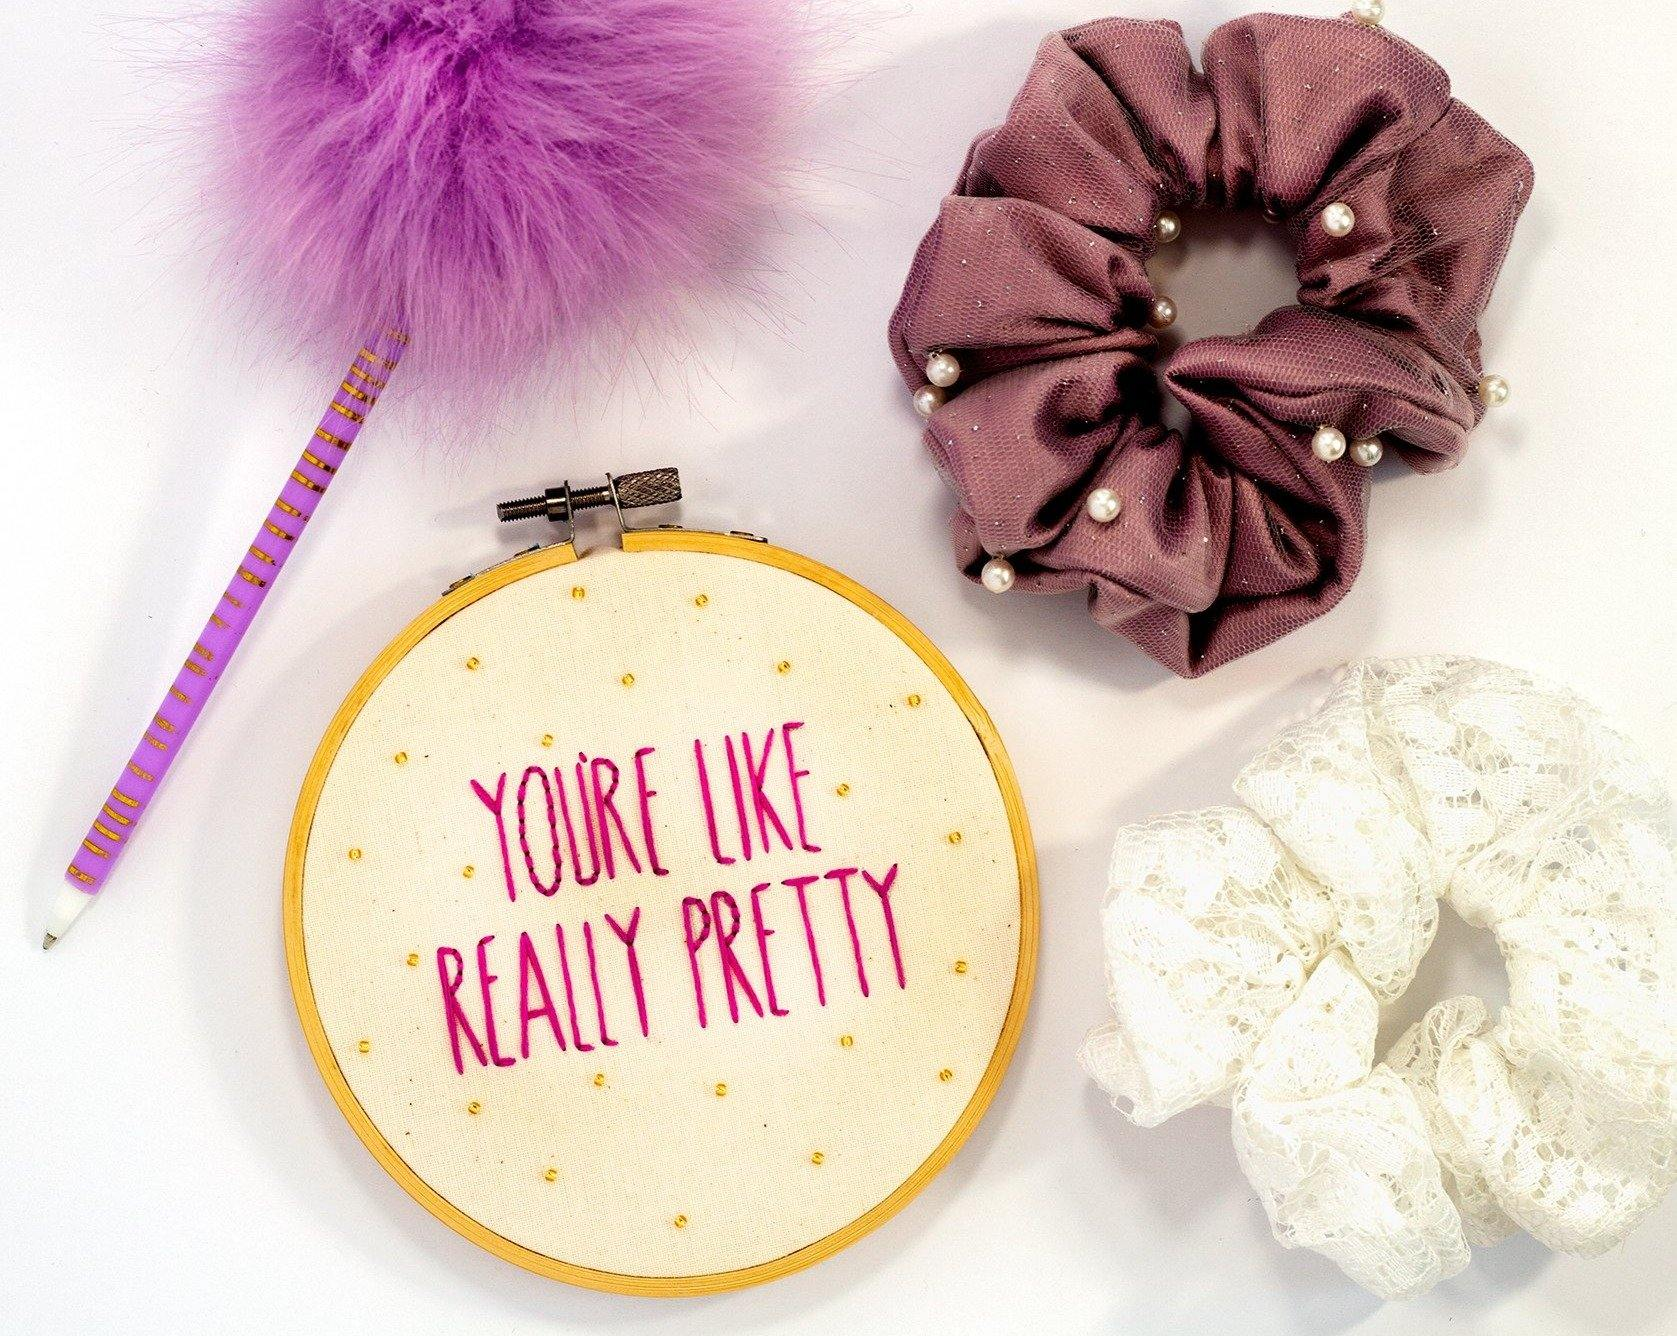 You're Like Really Pretty Mean Girls Embroidery Hoop | The Femme Bohemian - The Femme Bohemian